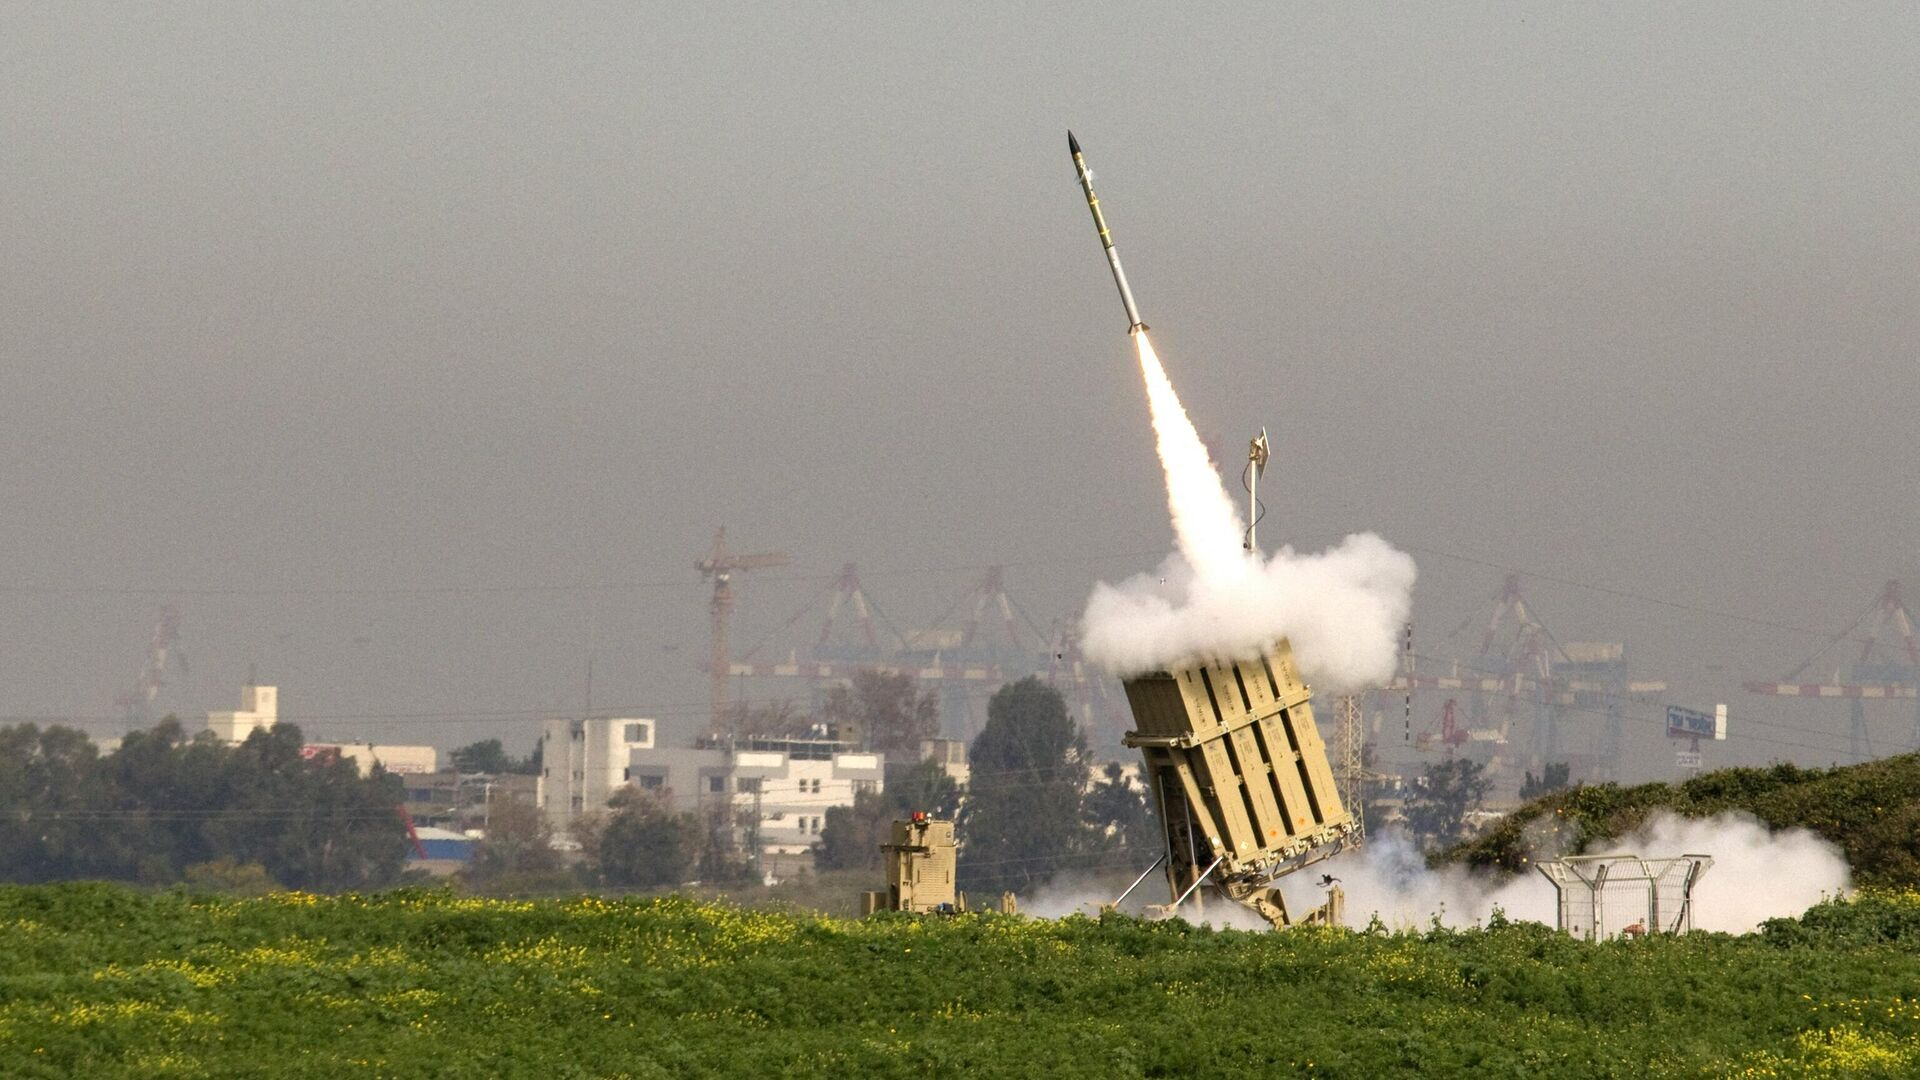 An Israeli missile is launched from the Iron Dome missile system in the city of Ashdod in response to a rocket launch from the nearby Palestinian Gaza Strip on March 11, 2012 - Sputnik International, 1920, 23.09.2021